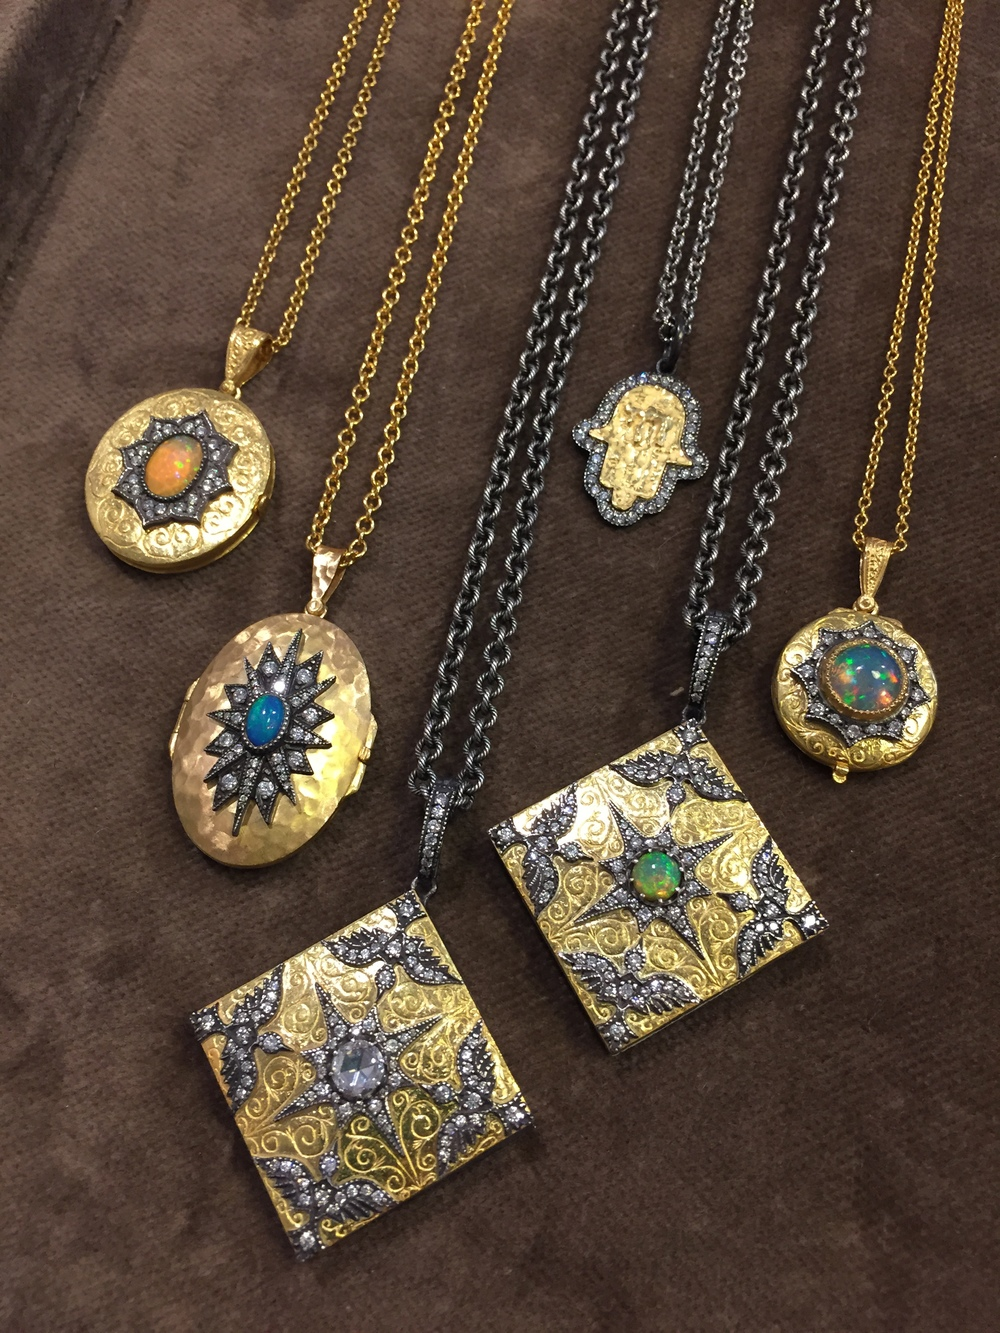 A selection of exceptional hand-carved 22k gold and silver lockets and pendants with gemstone and diamond accents, available at  Art & Soul , Boulder, CO.